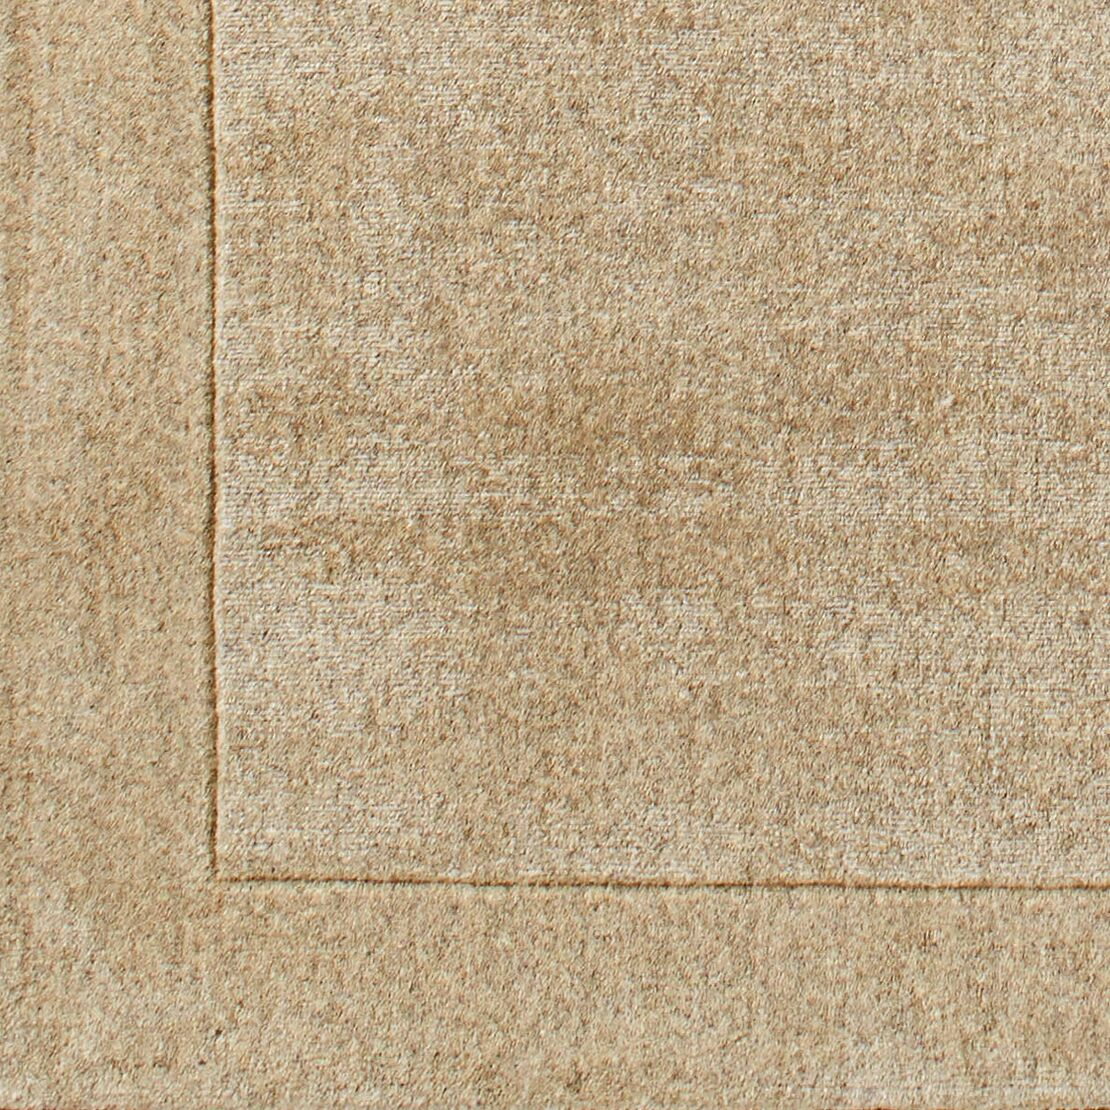 Cruse Hand-Woven Wool Sand Area Rug Size: Rectangle 8' x 10'